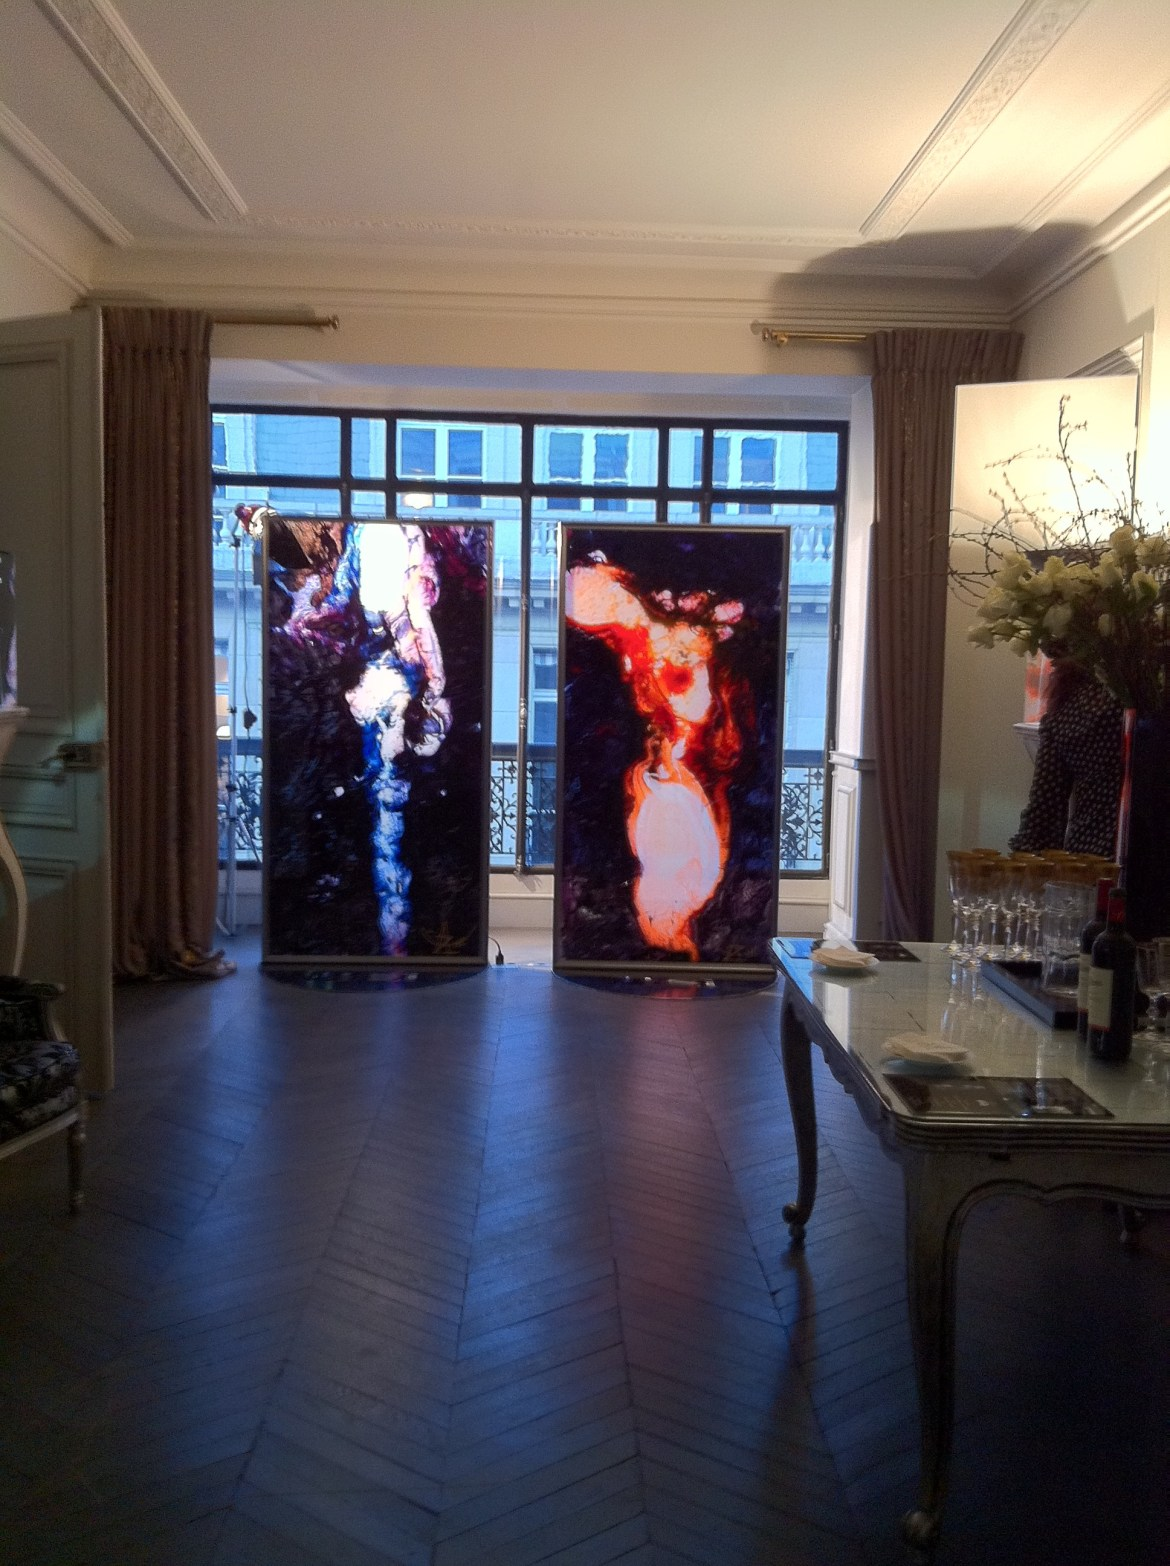 The pair of free standing artworks on exhibition at Eternamé, Paris.